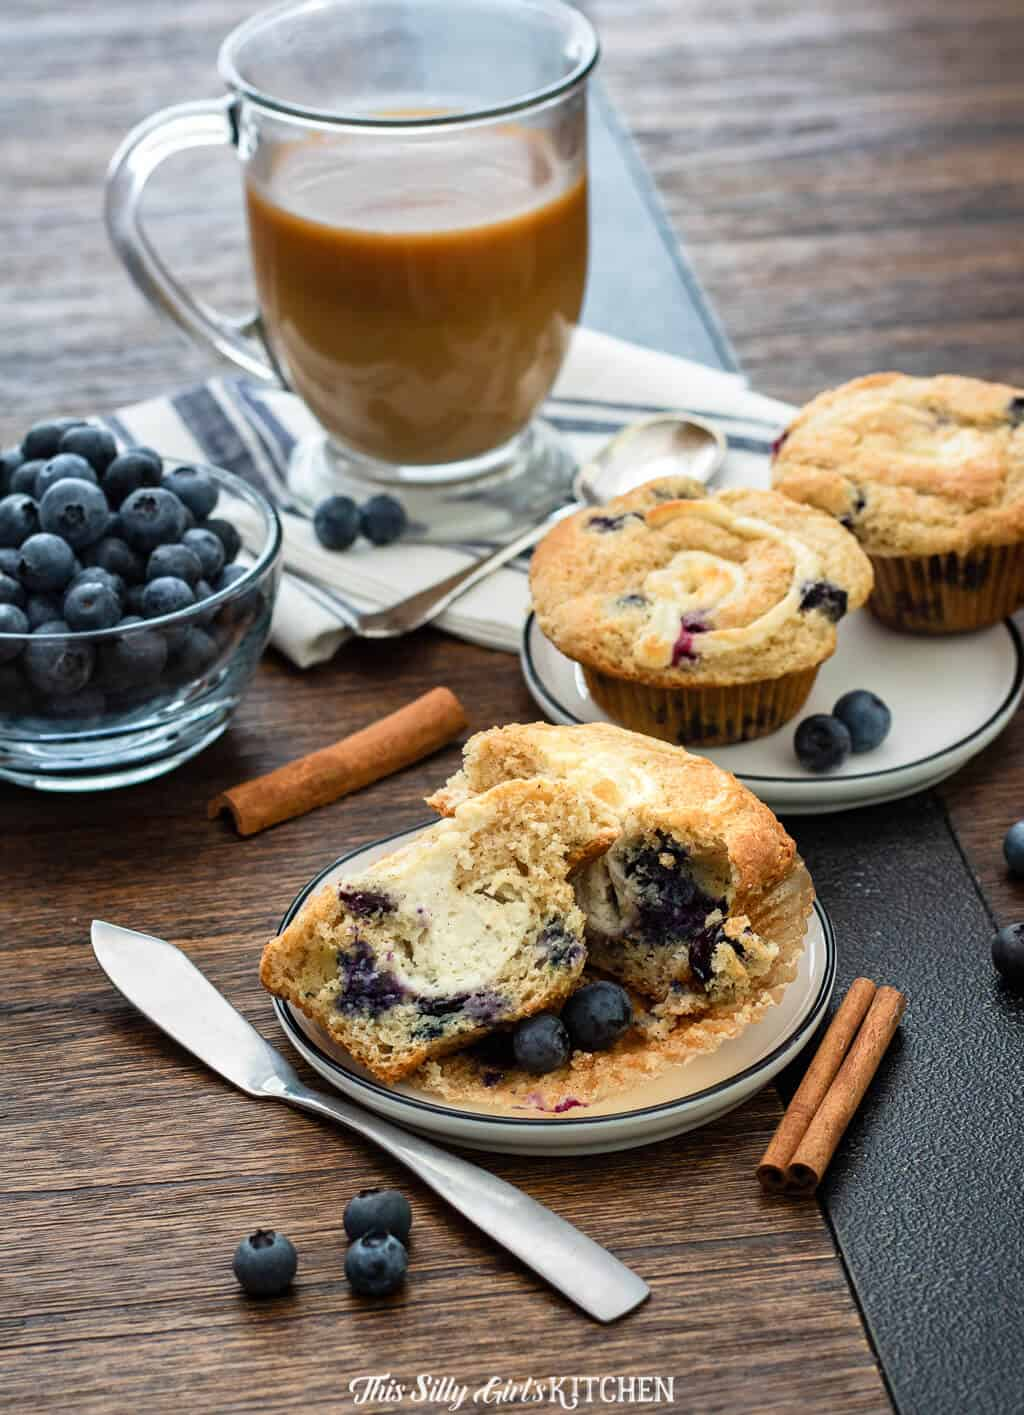 With a luscious cream cheese filling, this is by far the best blueberry muffin. #recipe from thissillygirlskitchen.com #muffin #blueberry #blueberrymuffin #bestblueberrymuffin #creamcheese #creamcheesemuffin